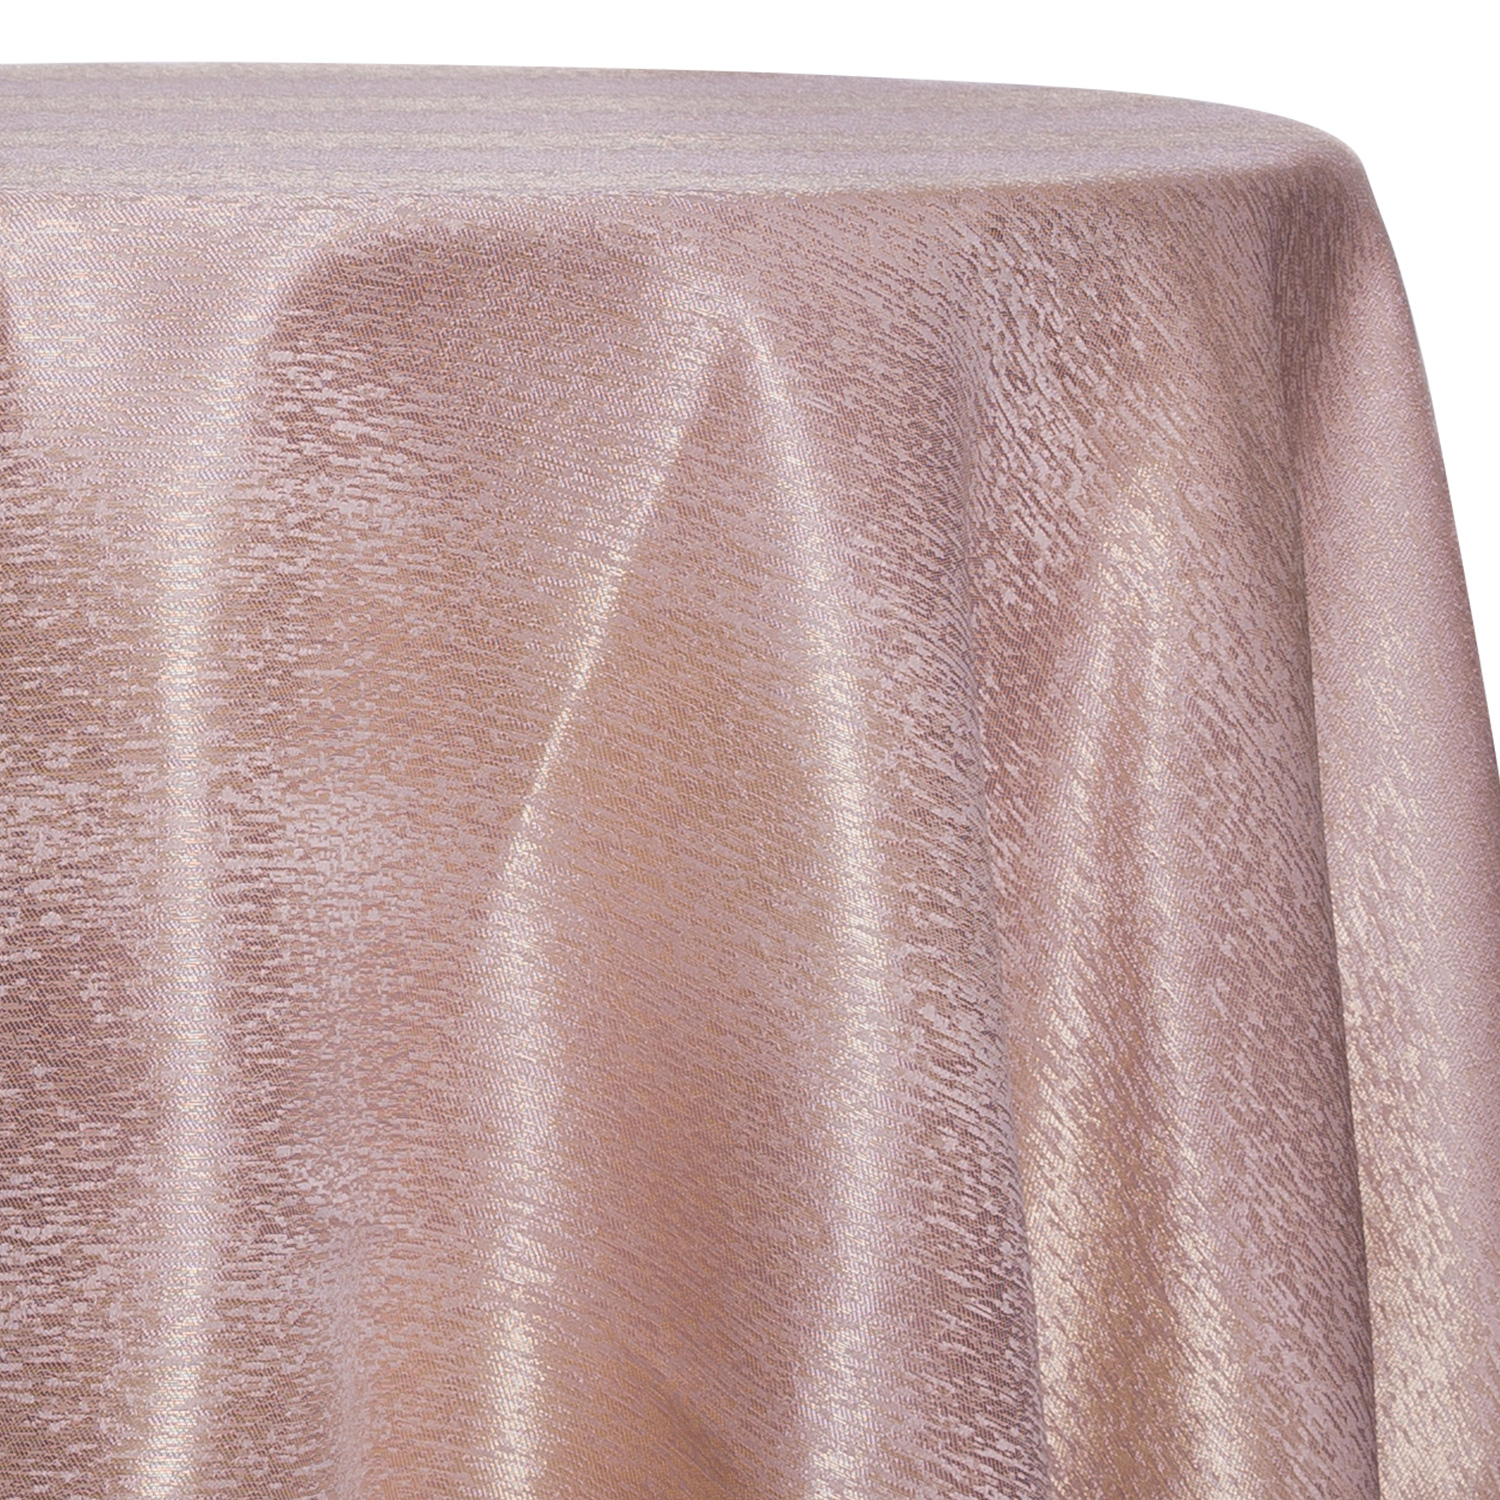 Beige - Designer Mardi Gras Linen Broad Tablecloth by Eastern Mills w/  Brushed Metallic Finish - Many Size Options